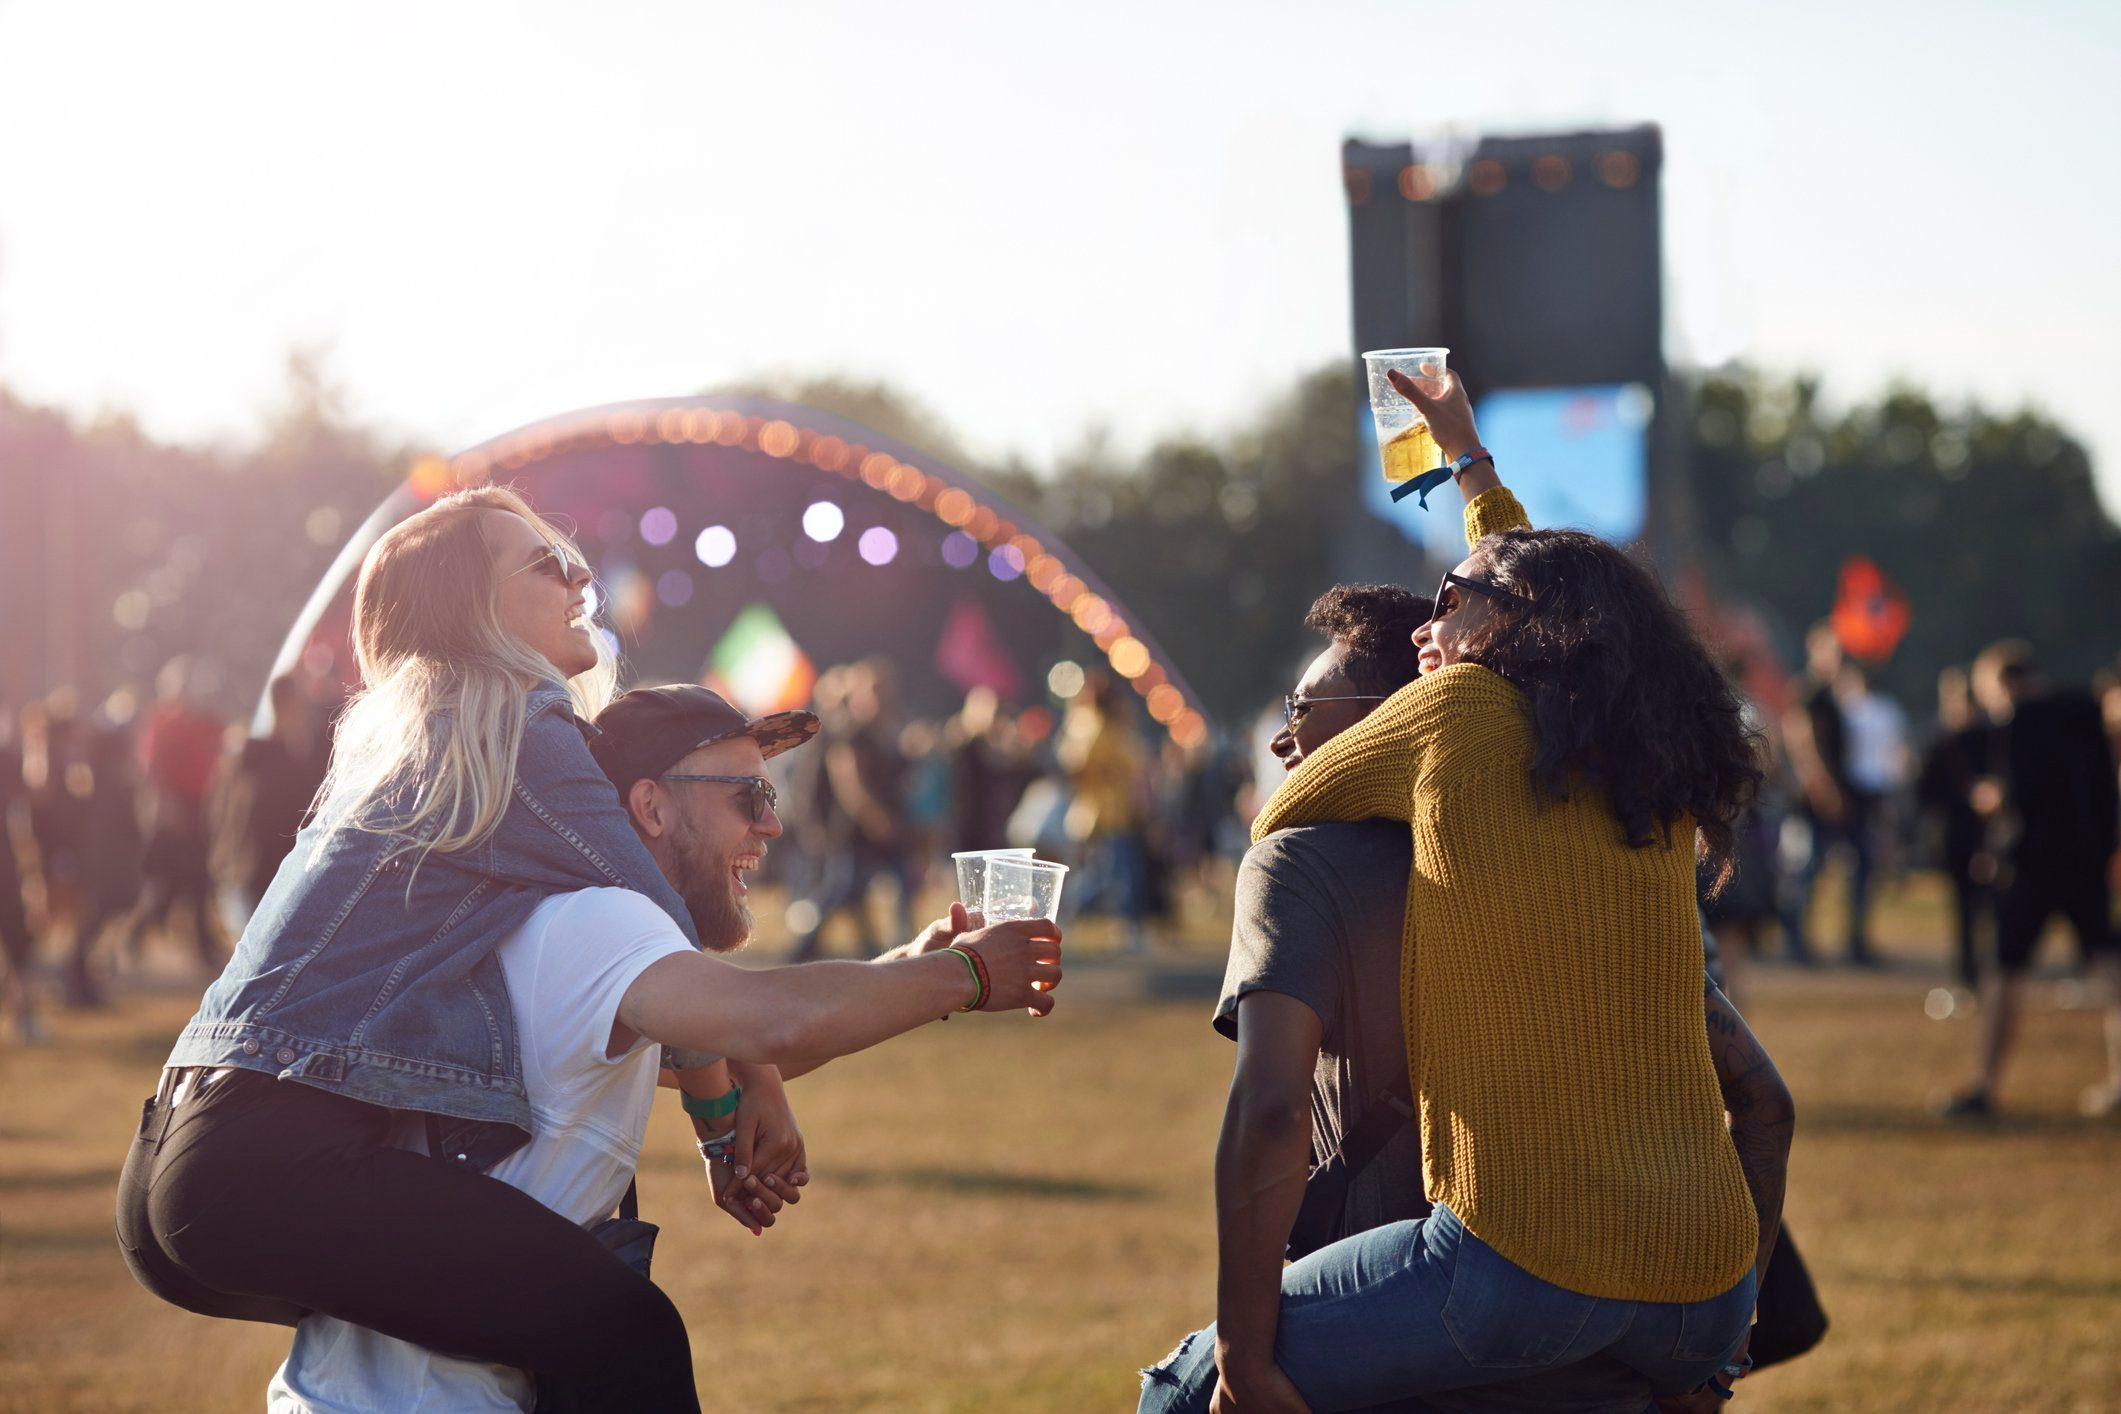 cause dehydration | friends at music festival convert